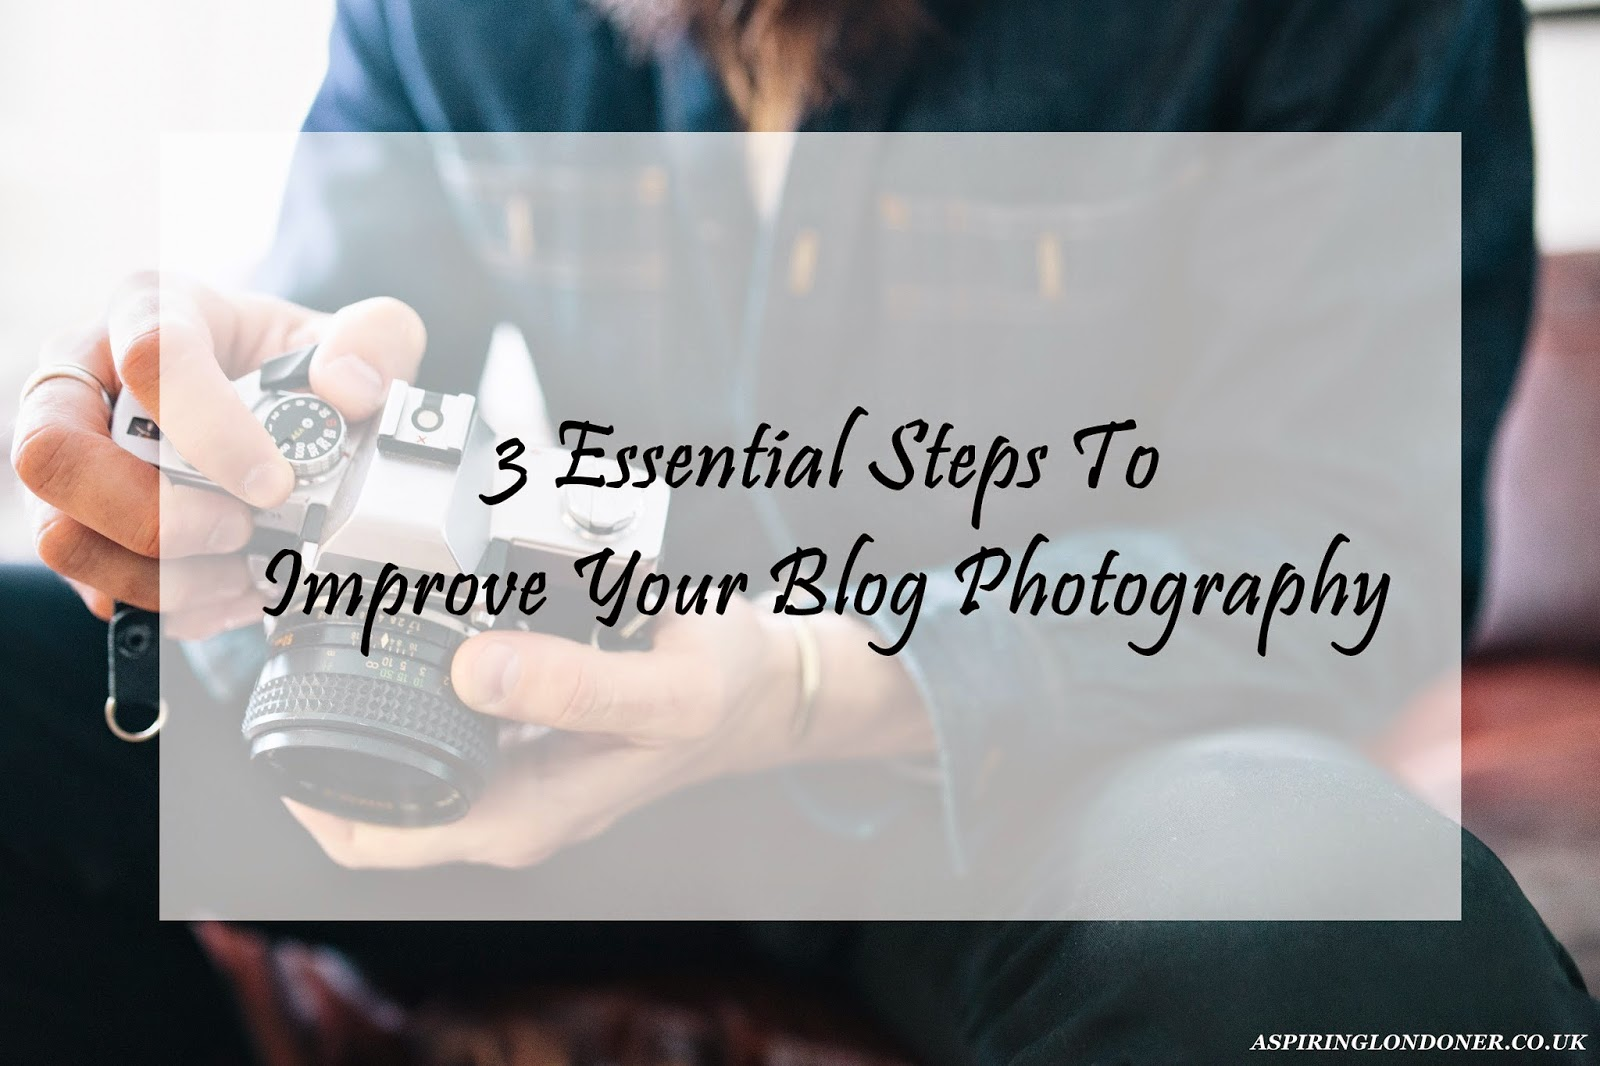 3 Essential Steps To Improve Your Blog Photography - Aspiring Londoner